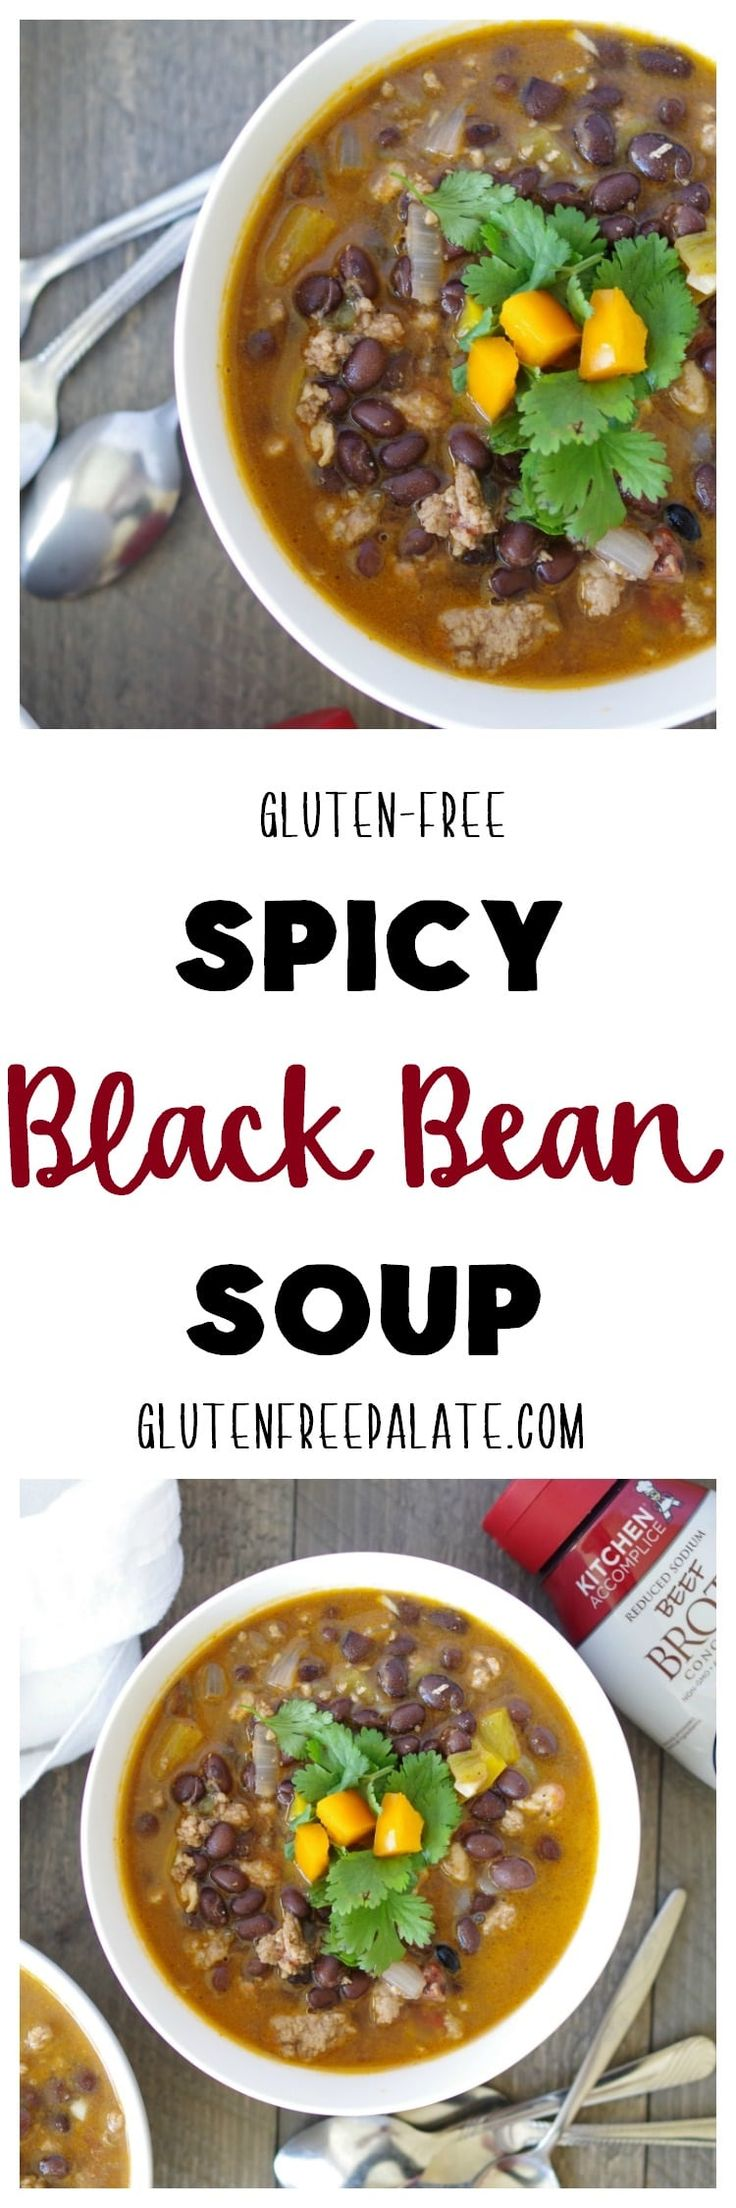 This Gluten-Free Spicy Black Bean Soup has a homey feel and a kick that will keep you coming back for more. Turn up the heat in your kitchen with this savory, spicy soup.